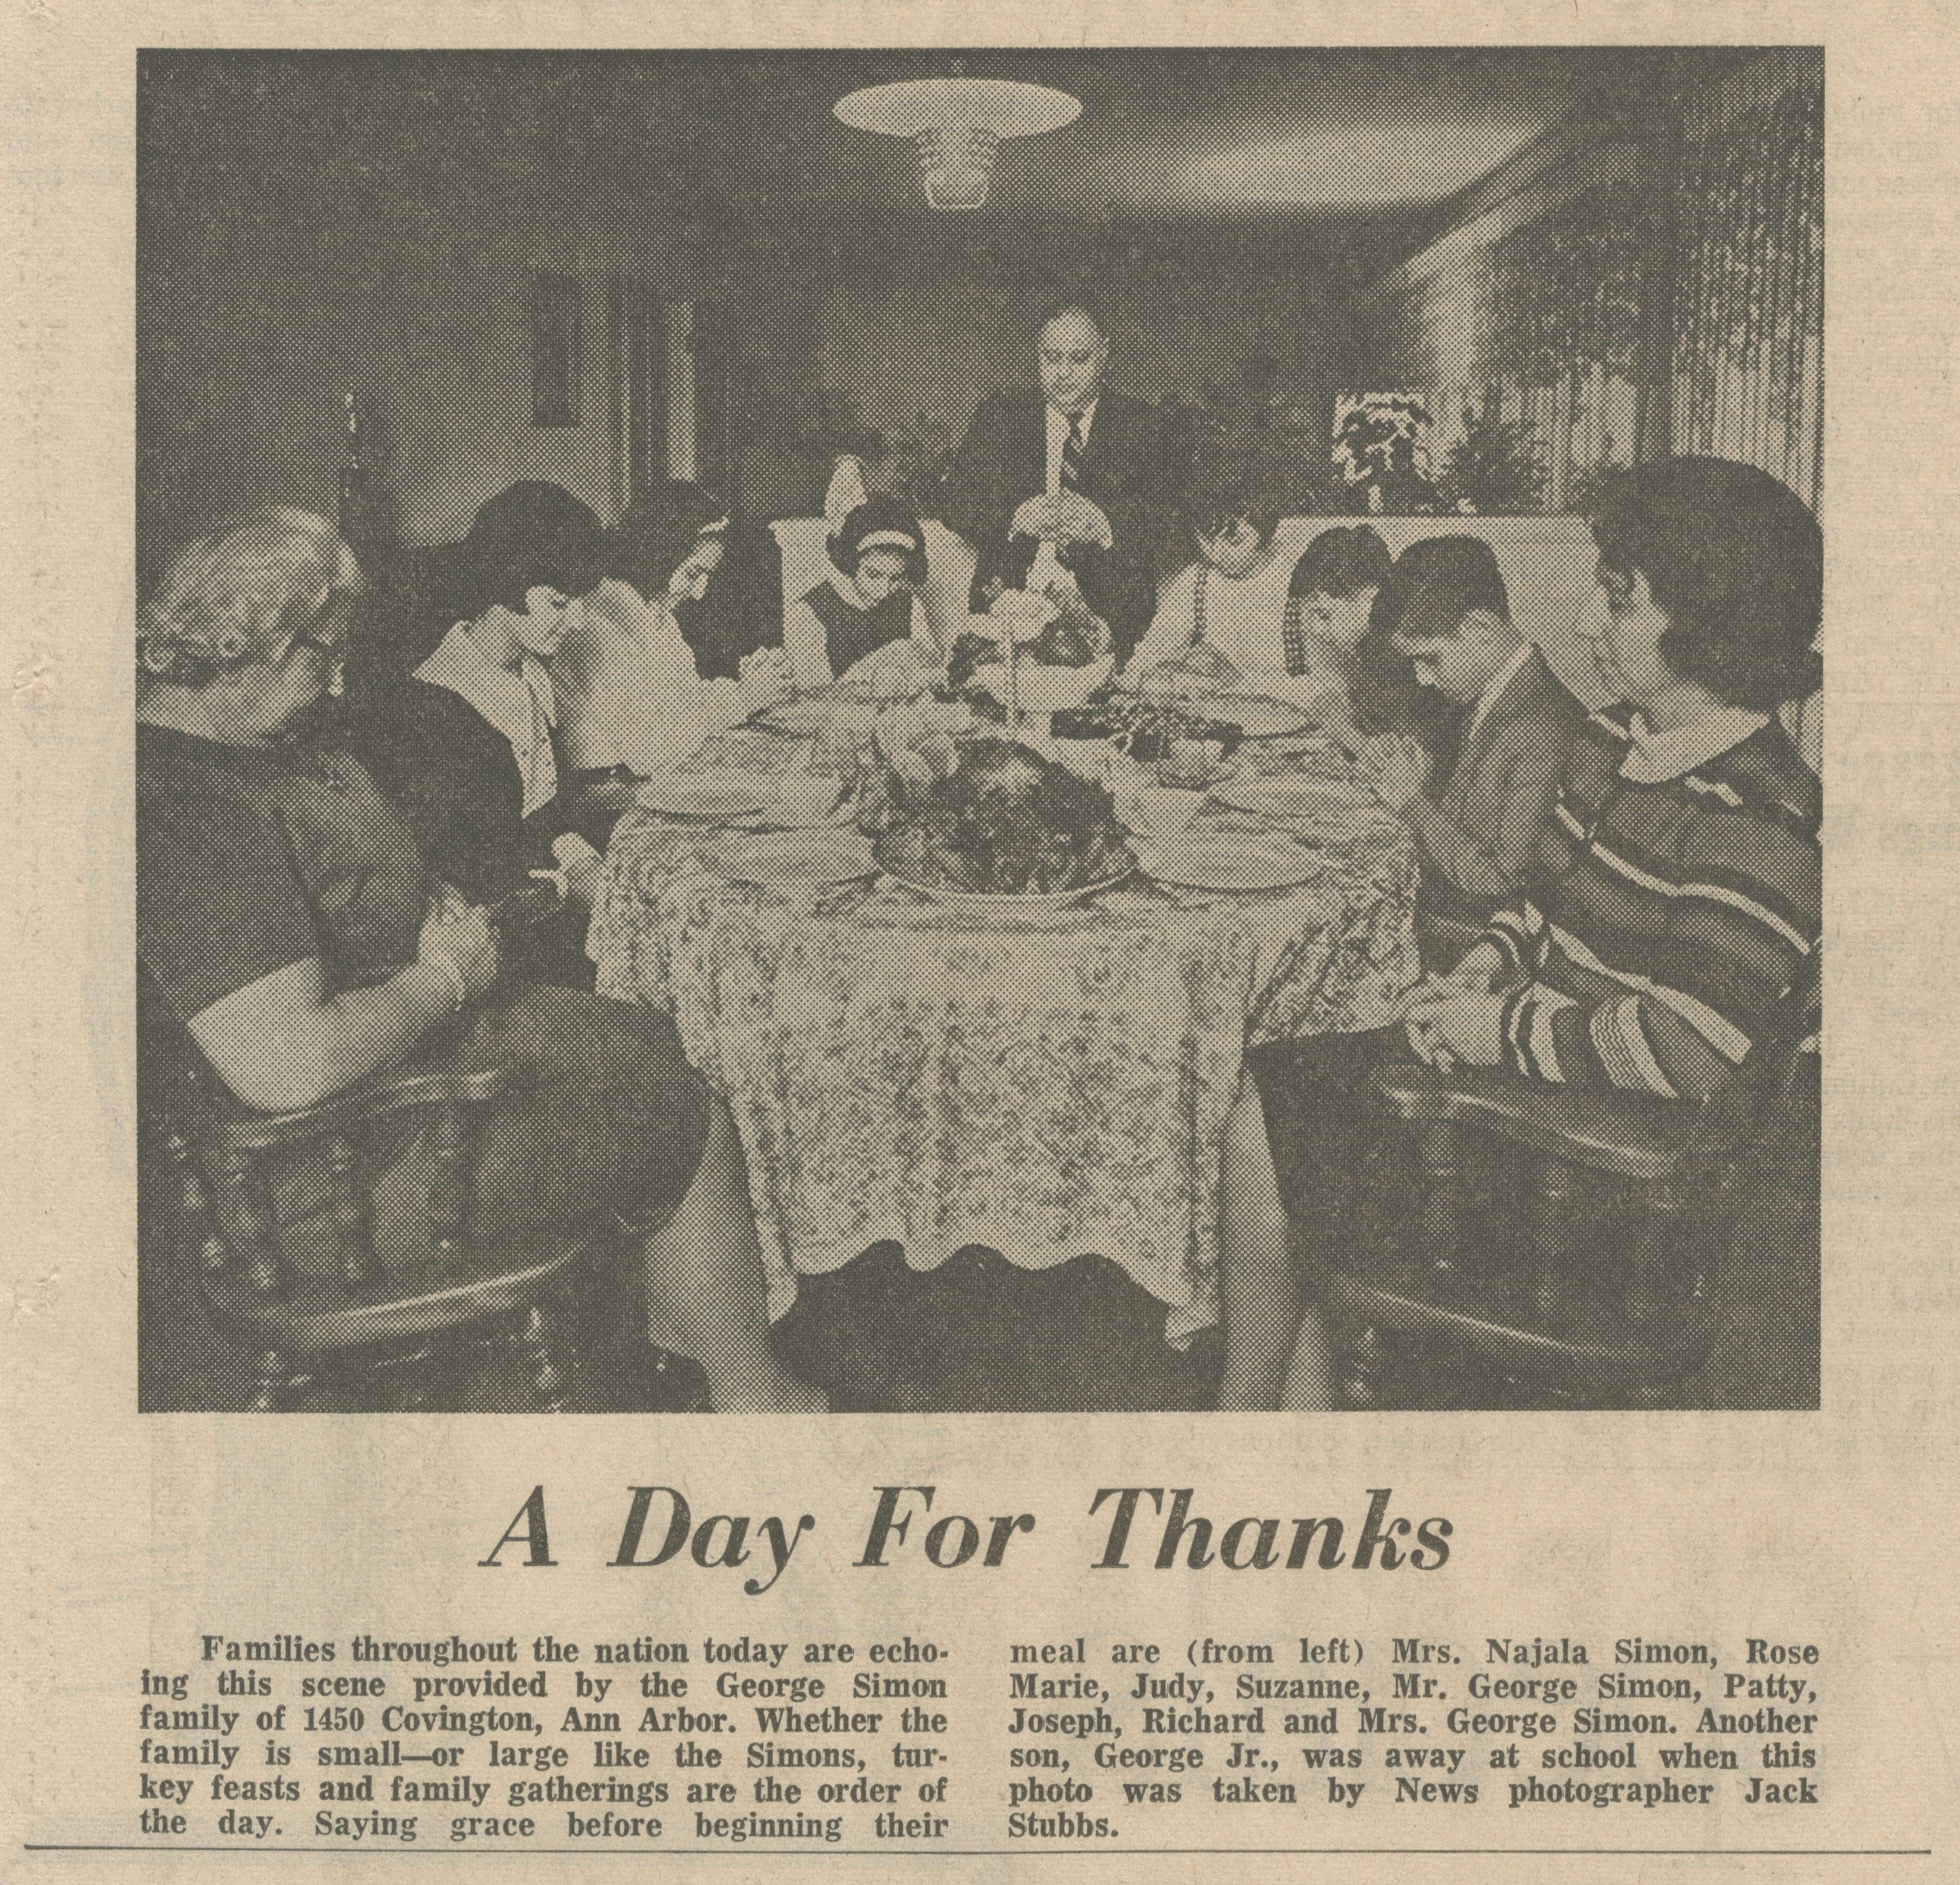 A Day For Thanks image